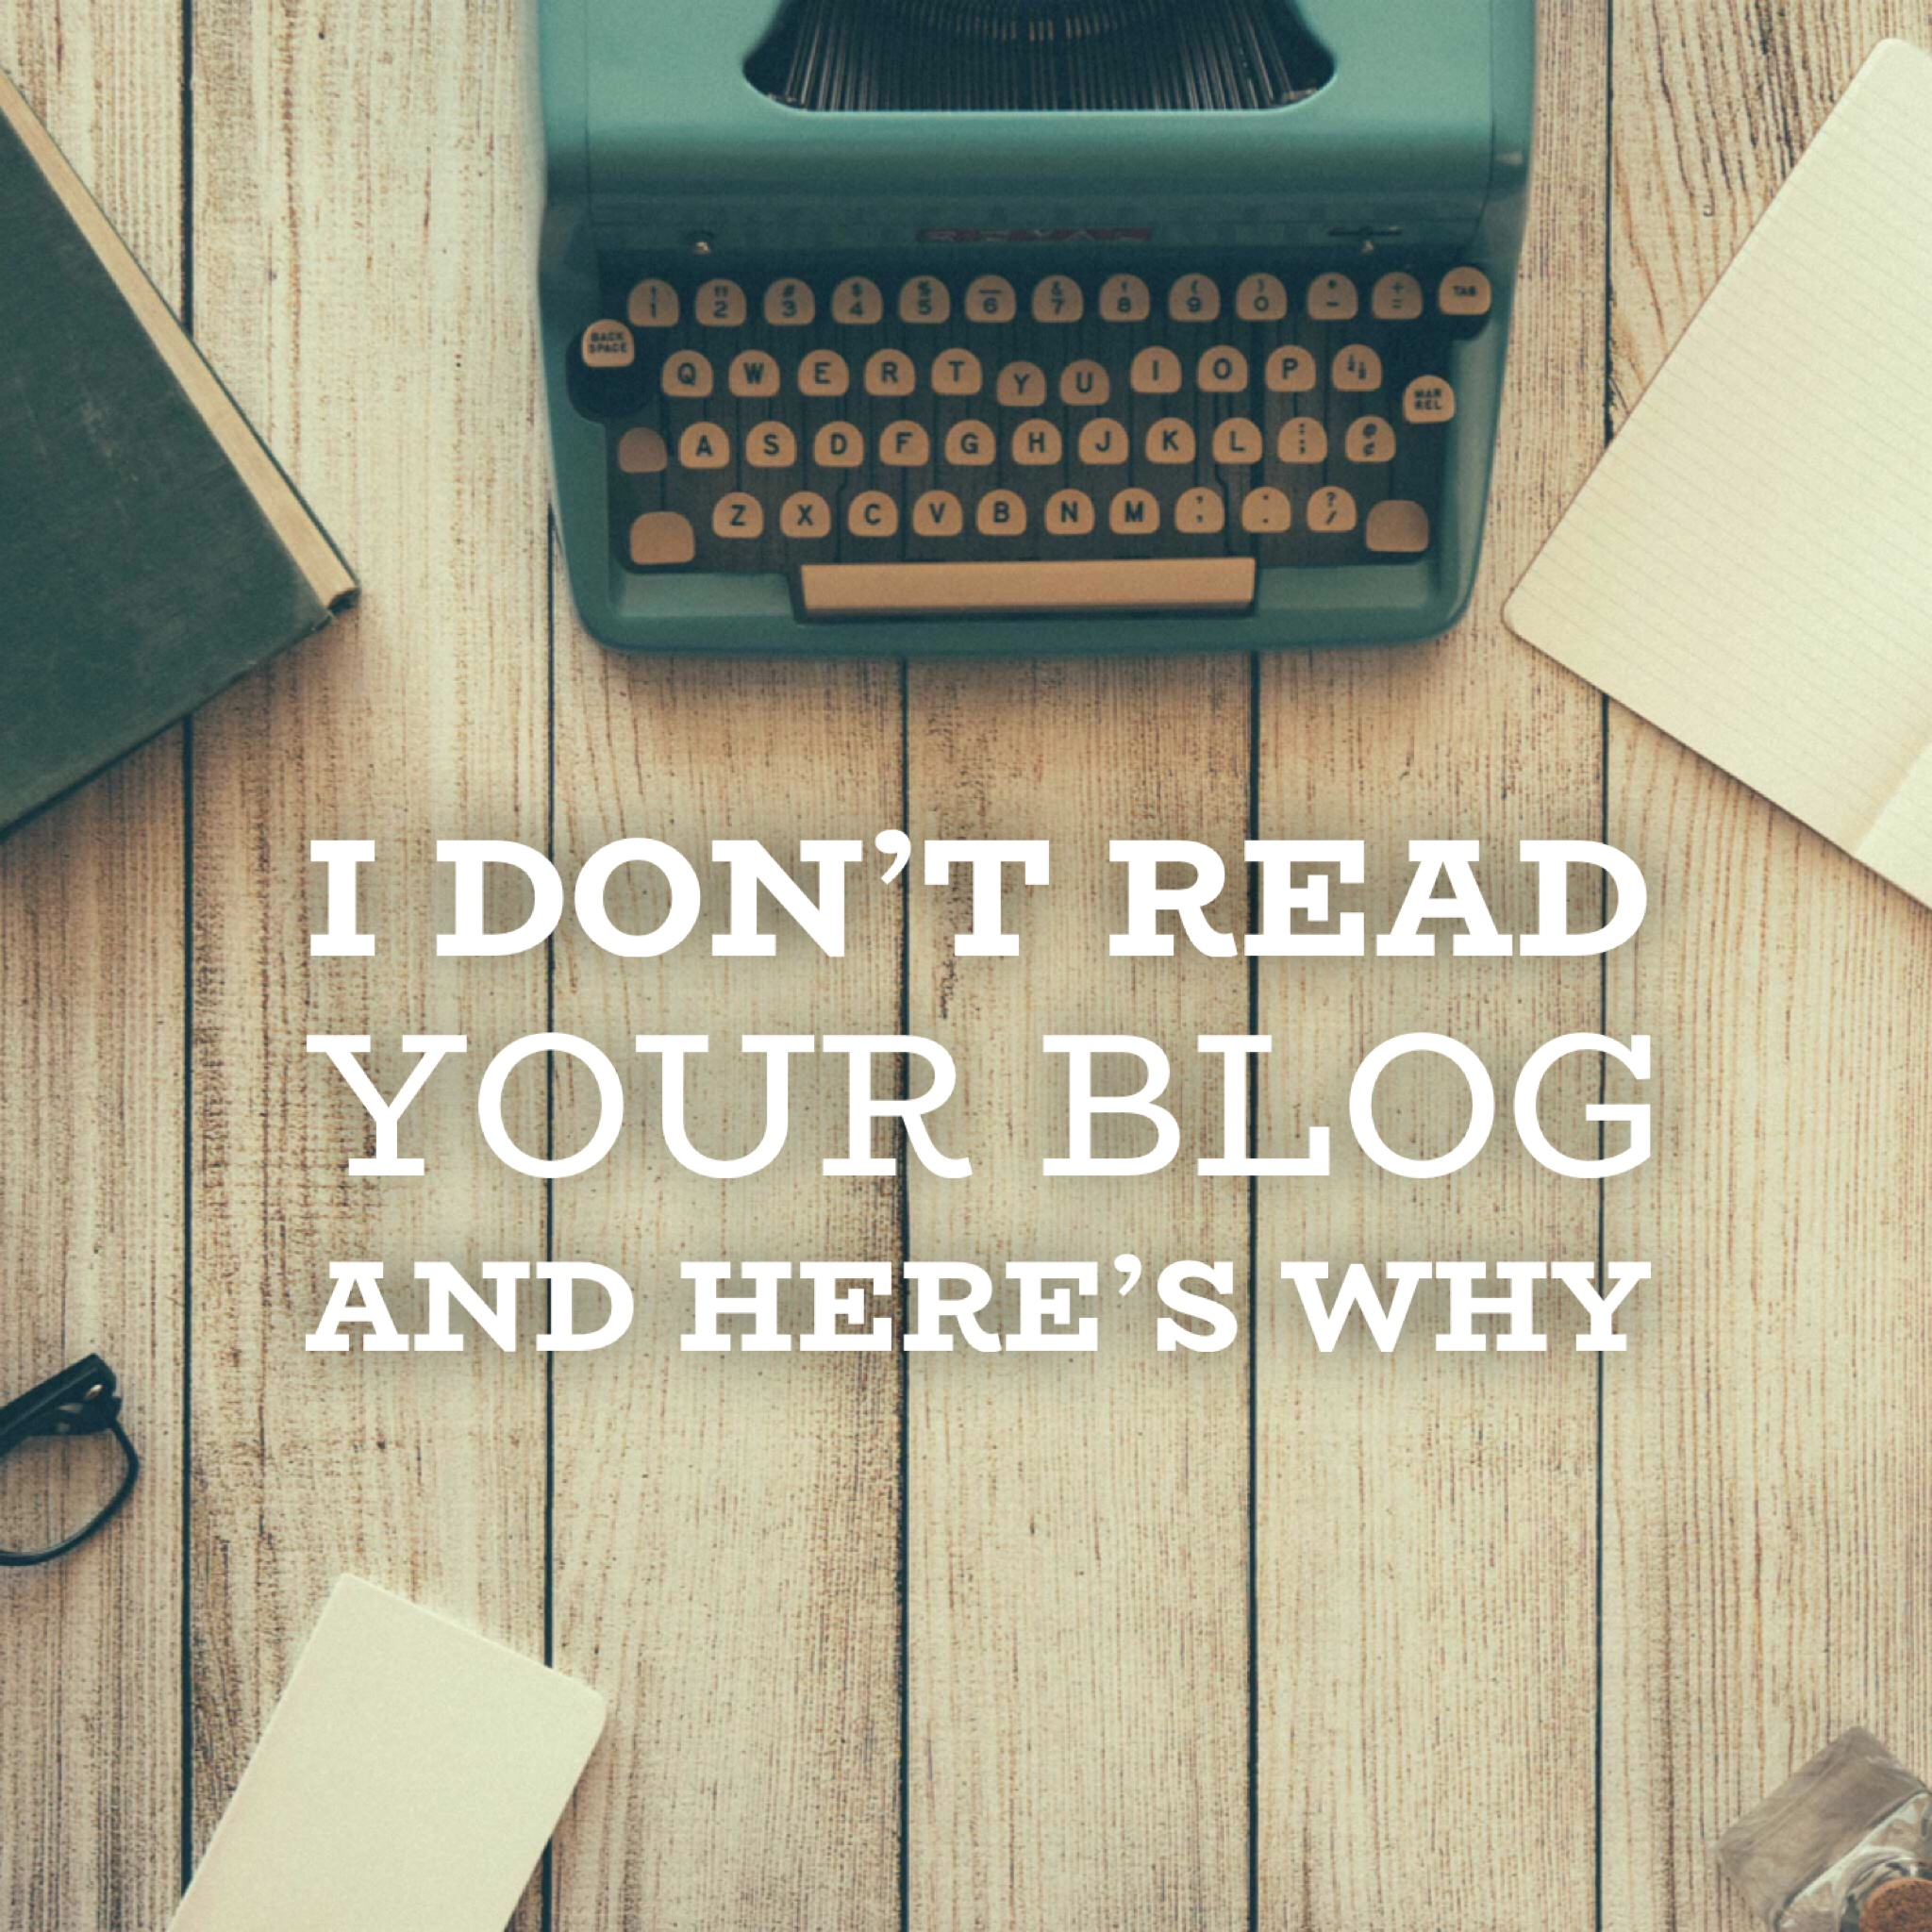 I don't read your blog and why